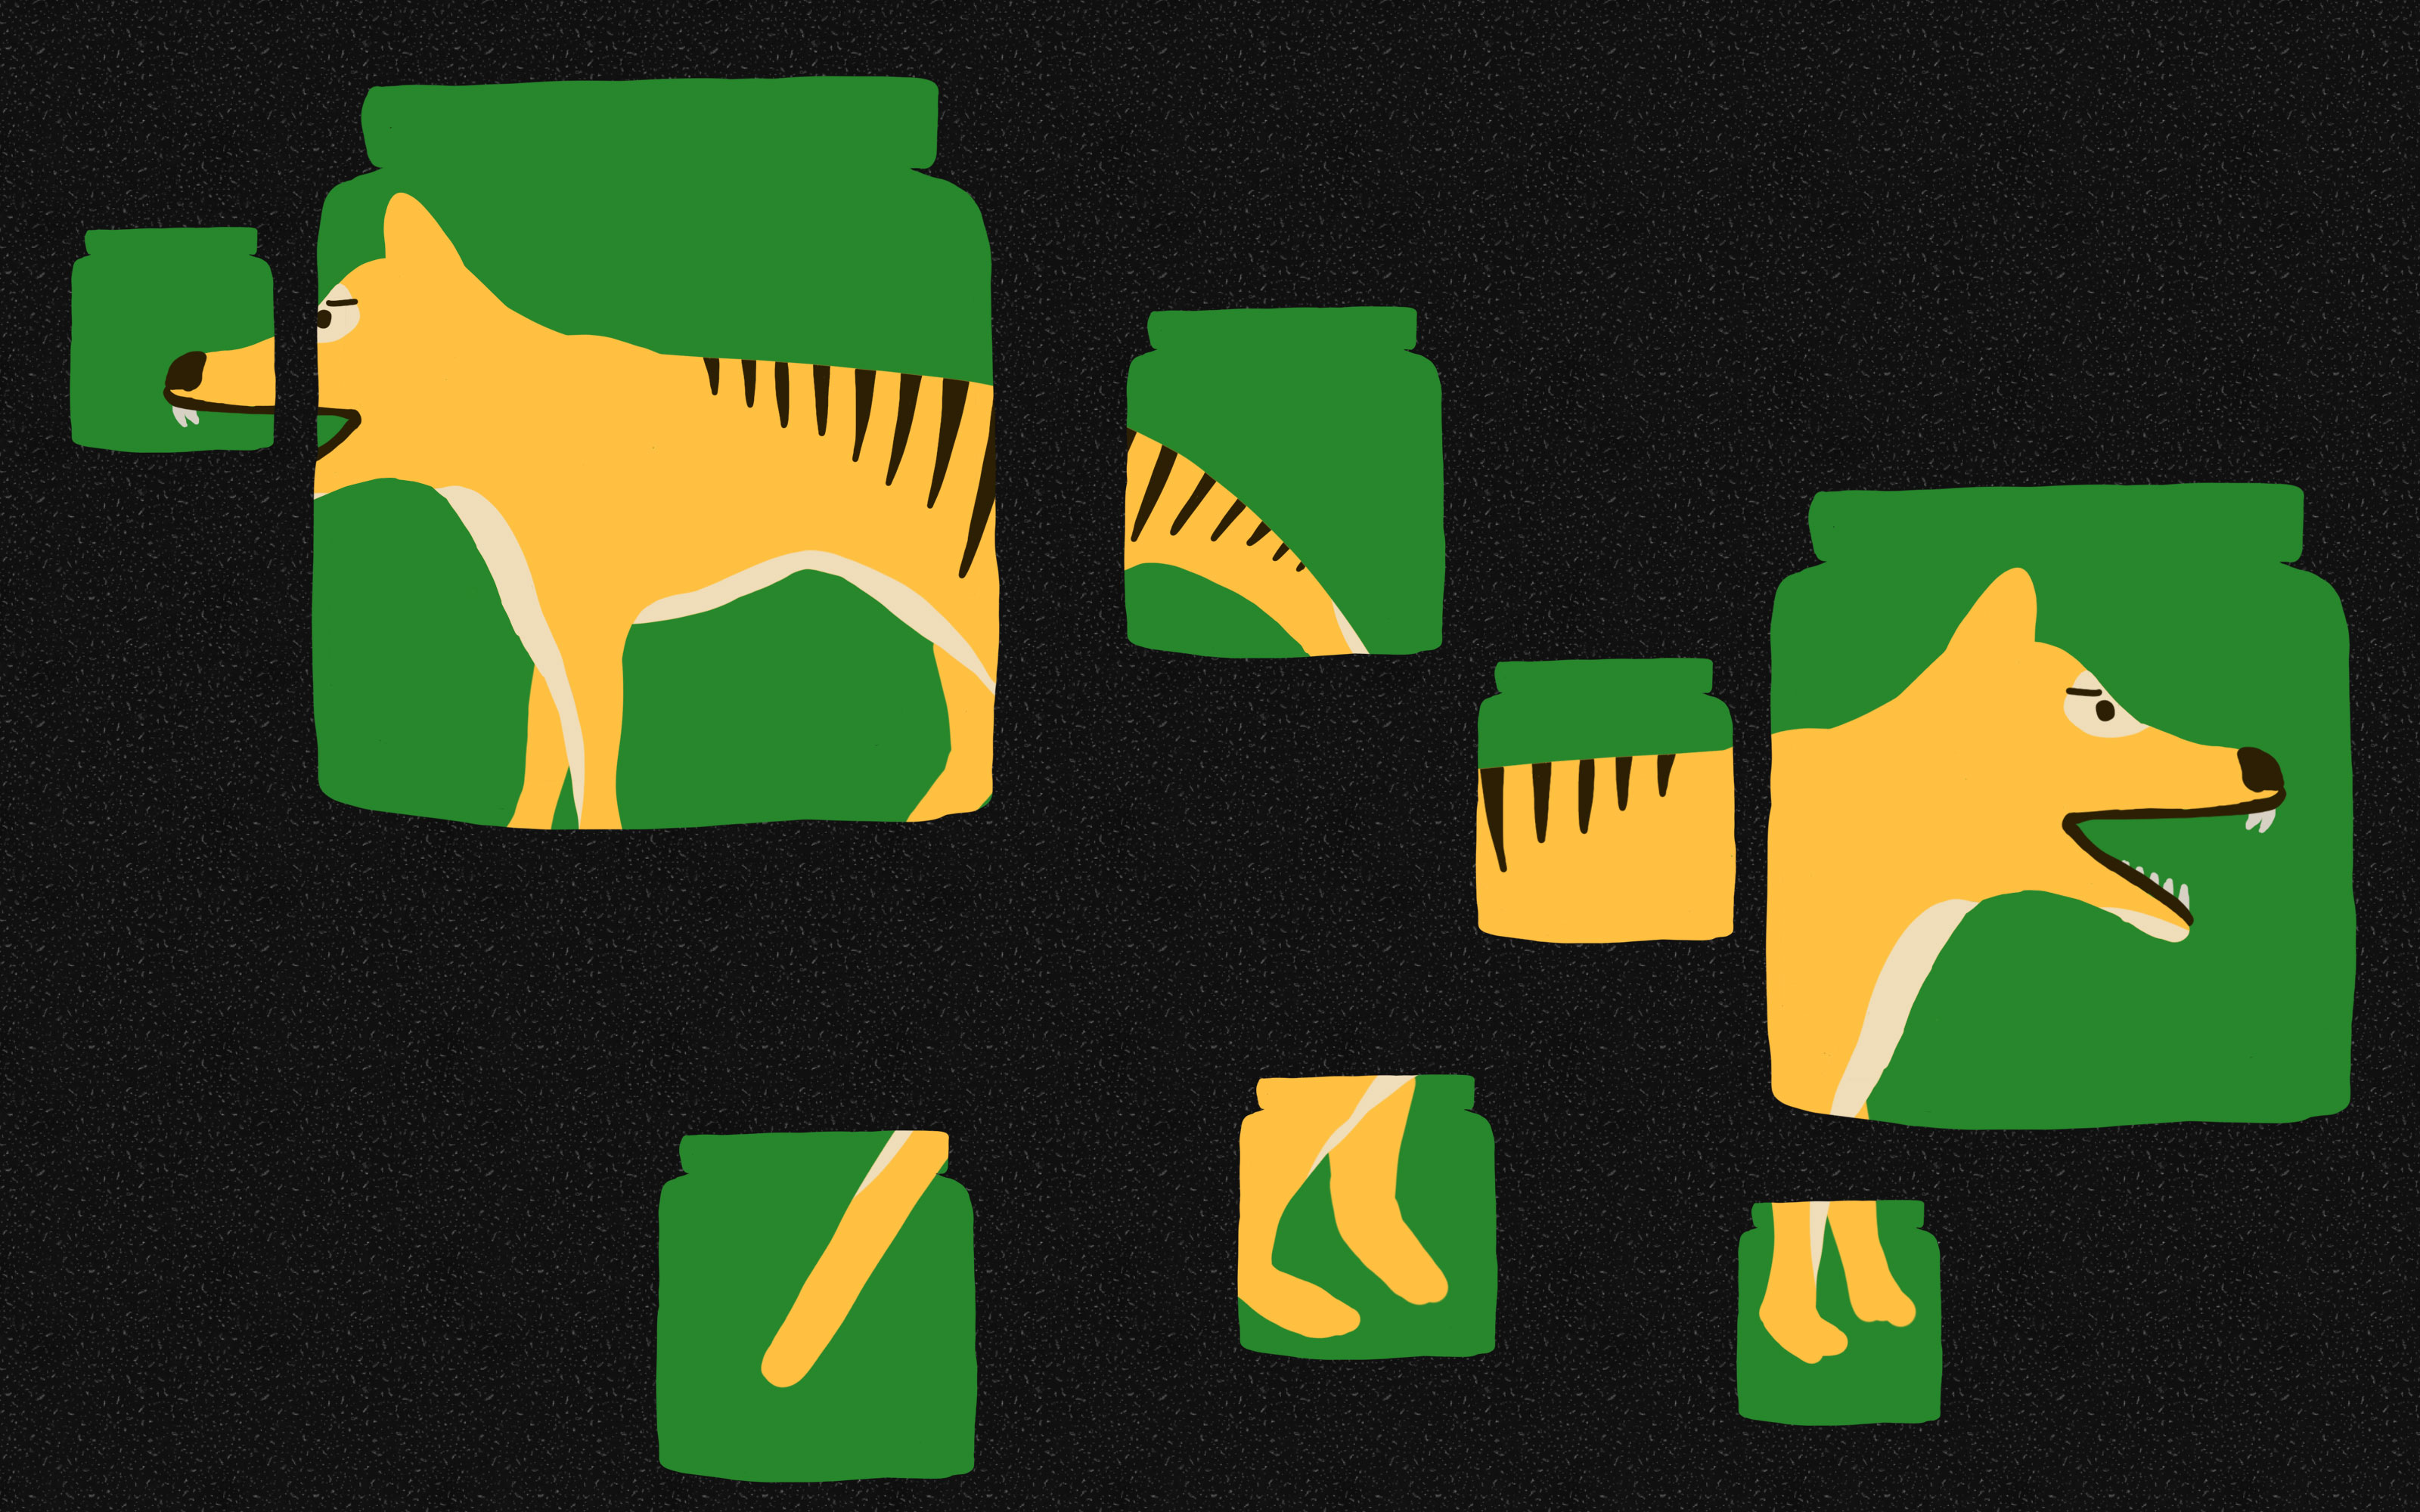 Illustration of the thylacine, different body parts visible within the shape of preservation jars